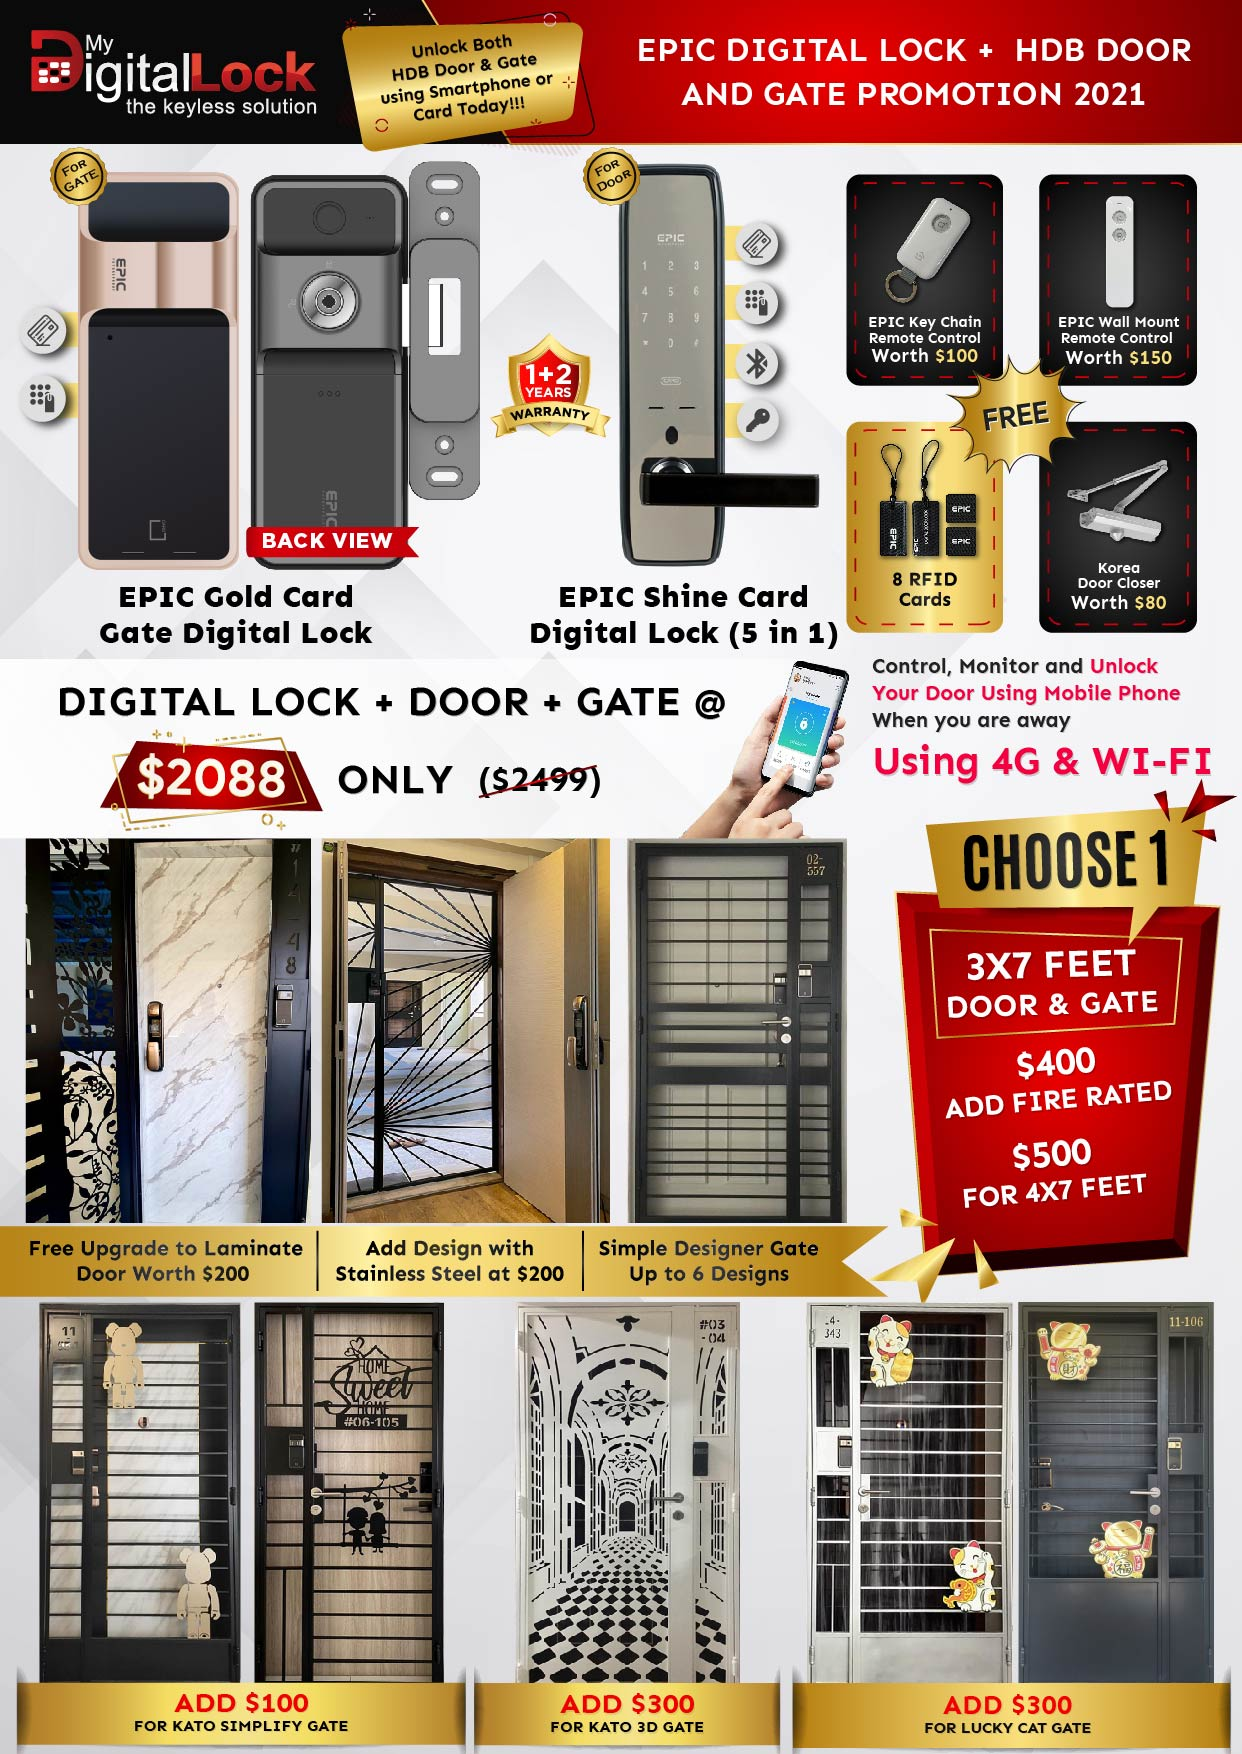 Epic-Digital-Lock-and-HDB-Gate-2021